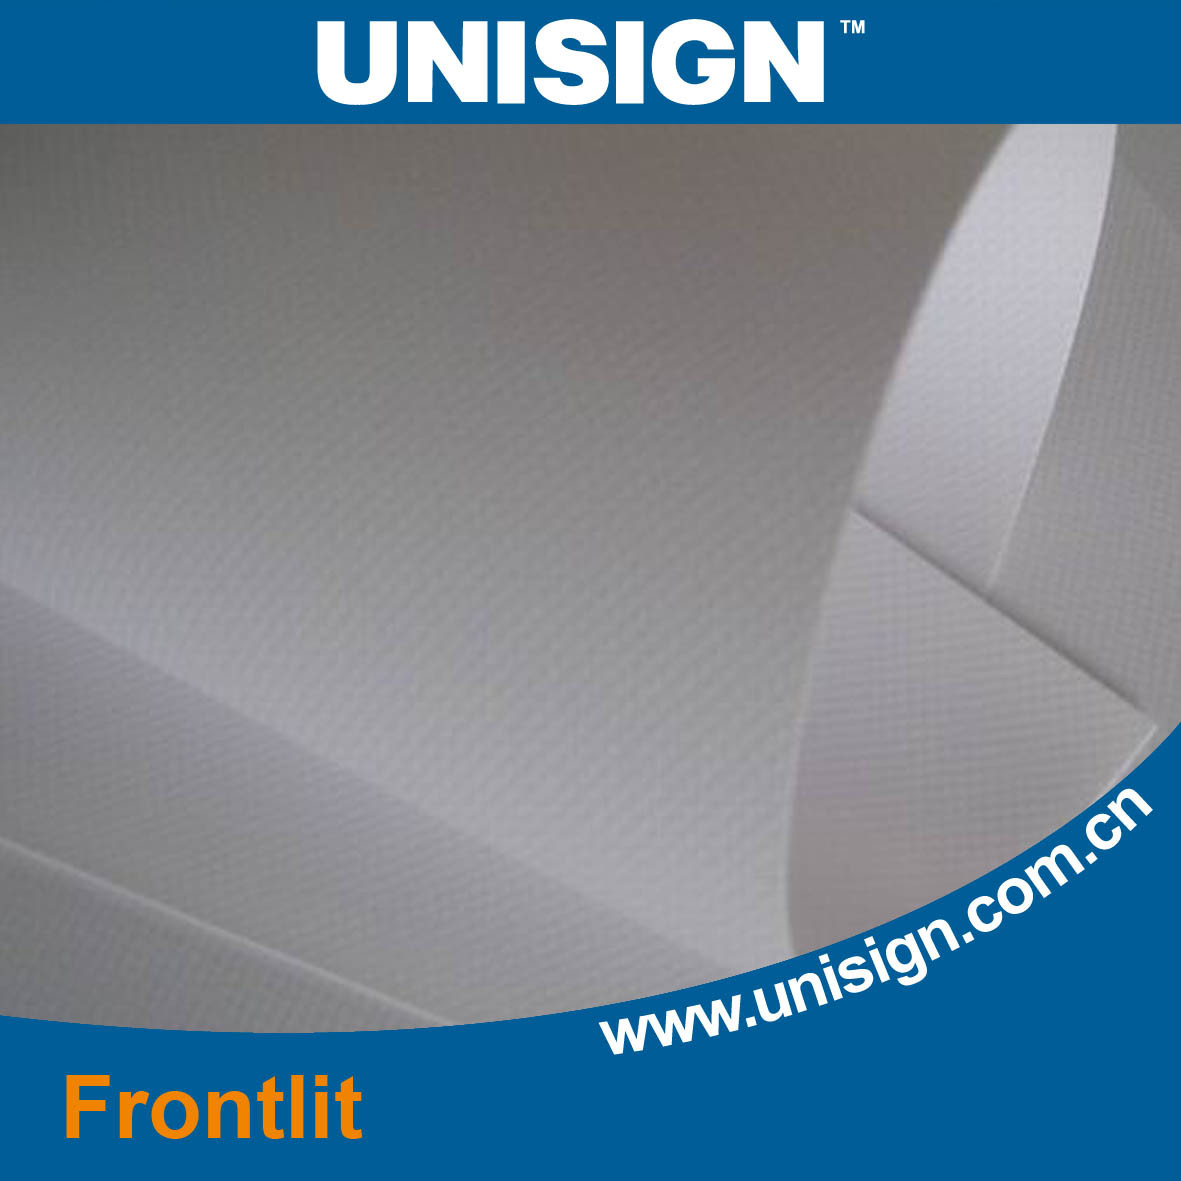 Laminated Frontlight Flex Banner for Digital Printing